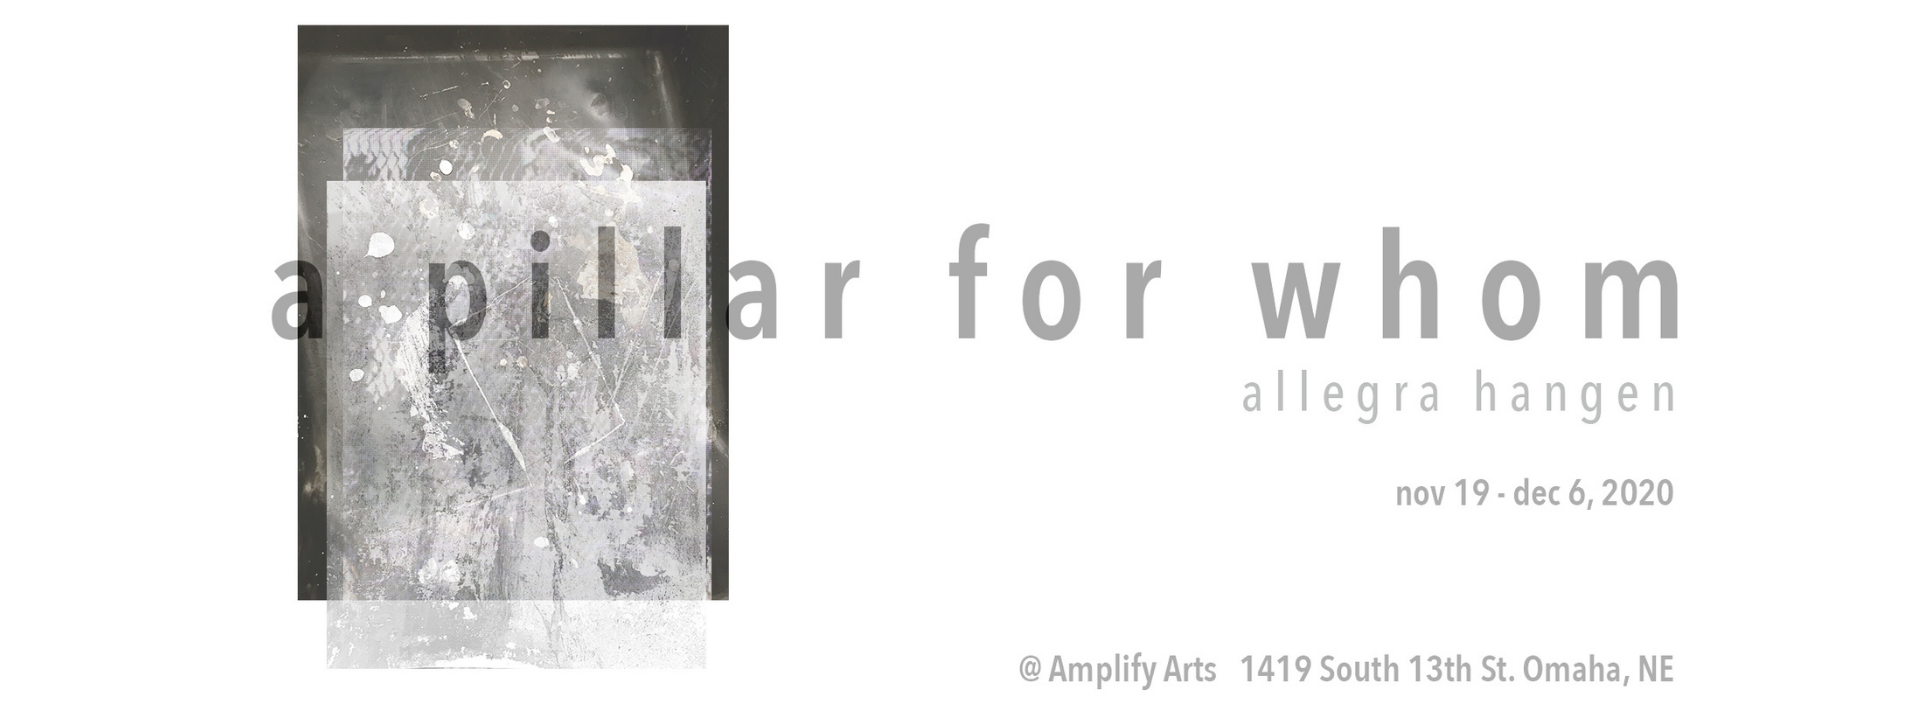 A pillar for whom banner image